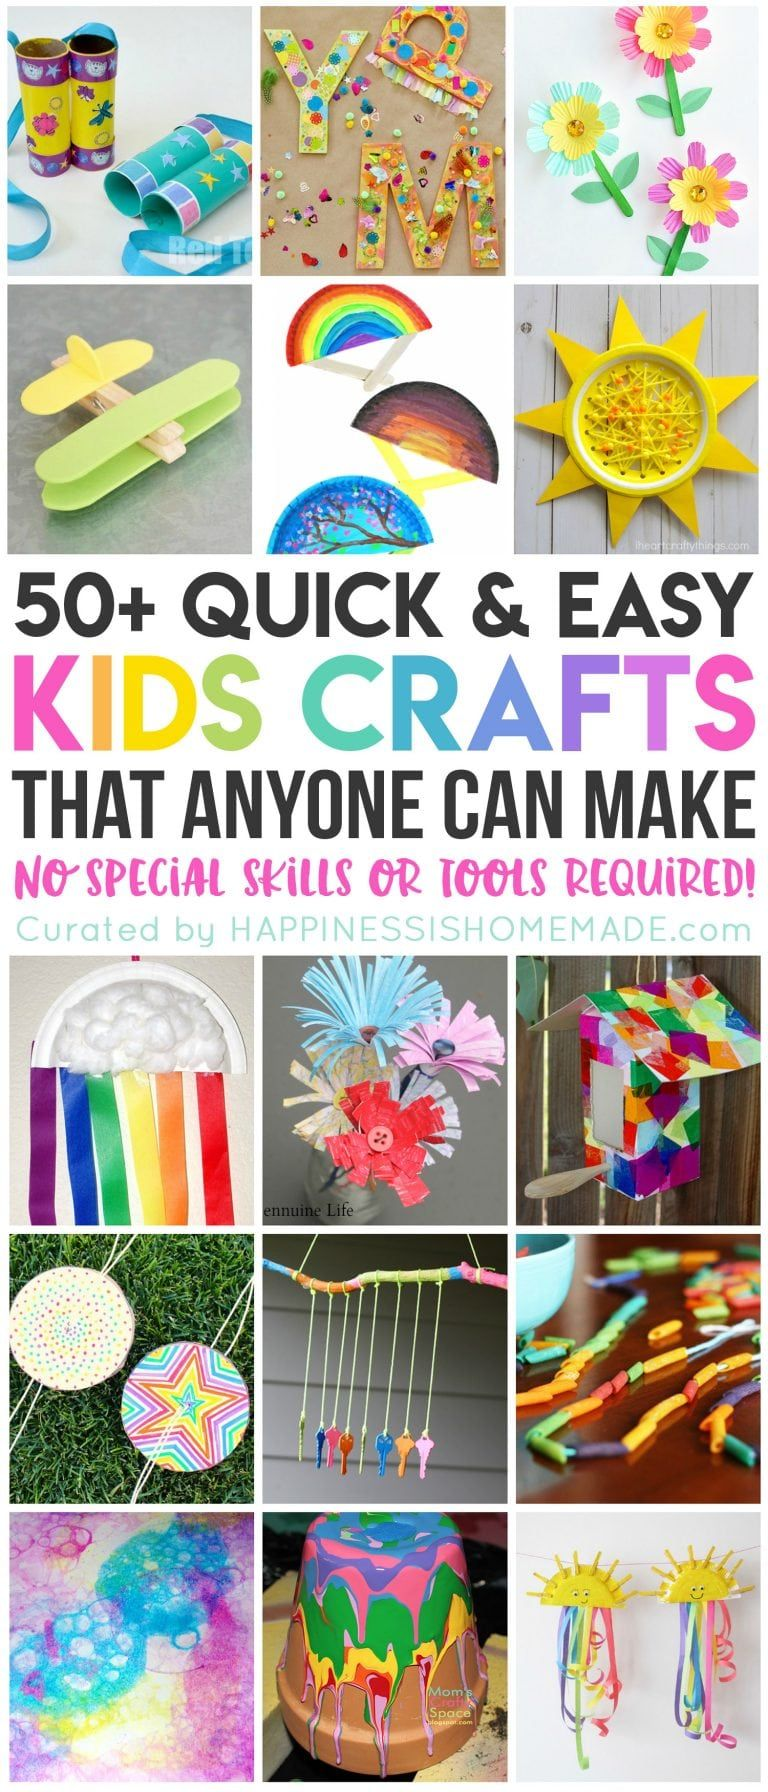 48++ Crafts to do with kids info